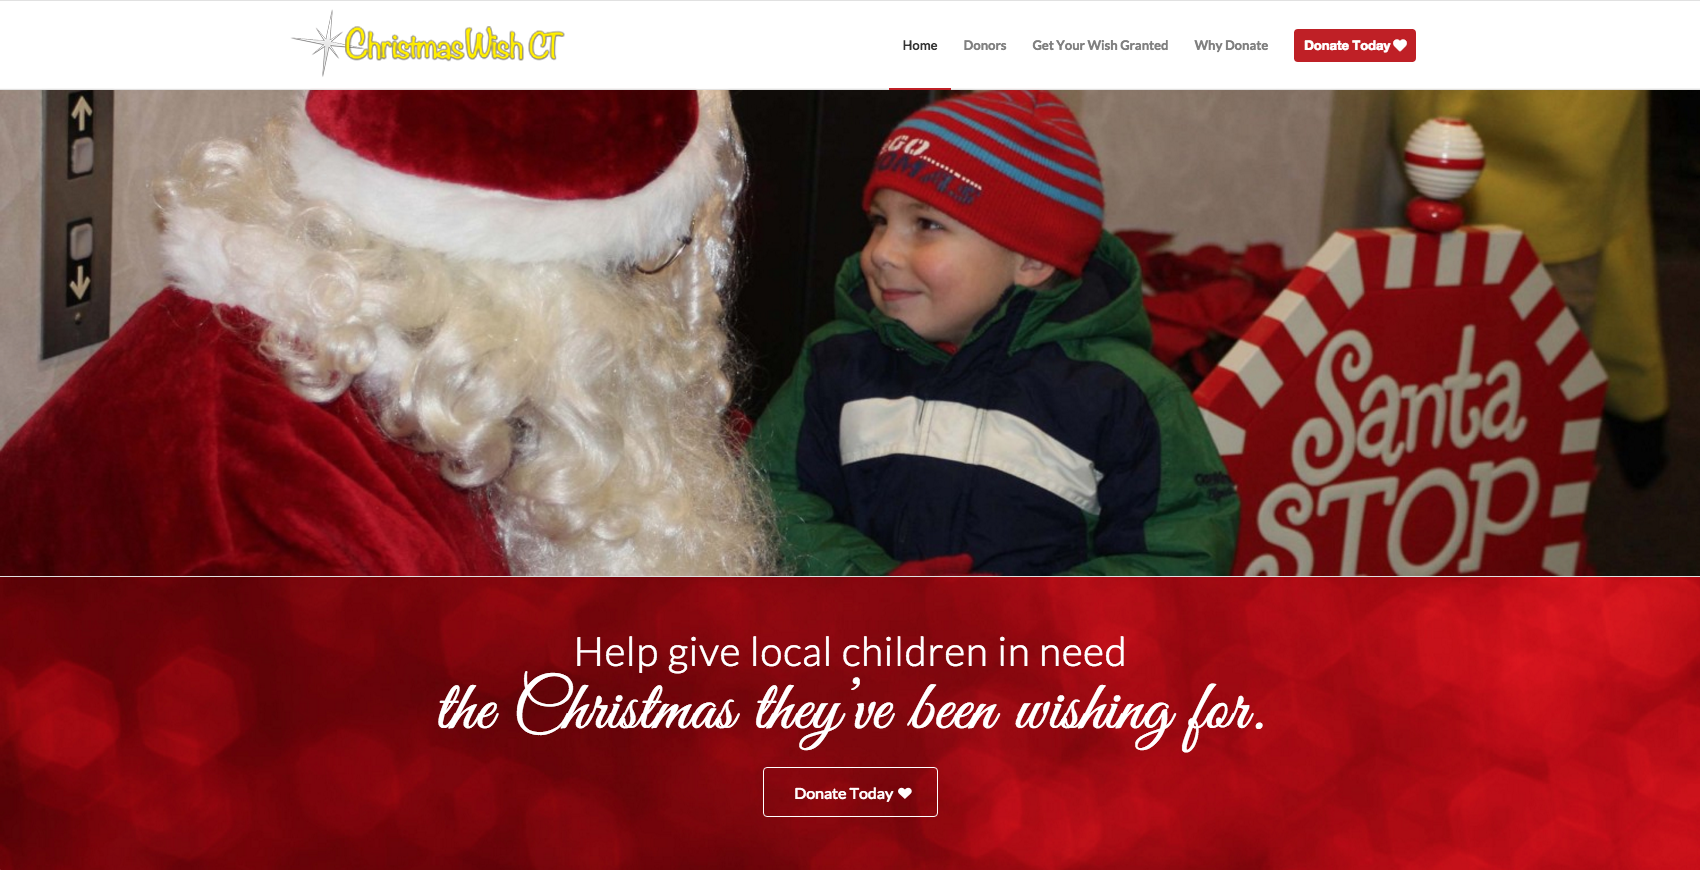 IMPACT Joins Forces With Christmas Wish CT for the Holiday Season!